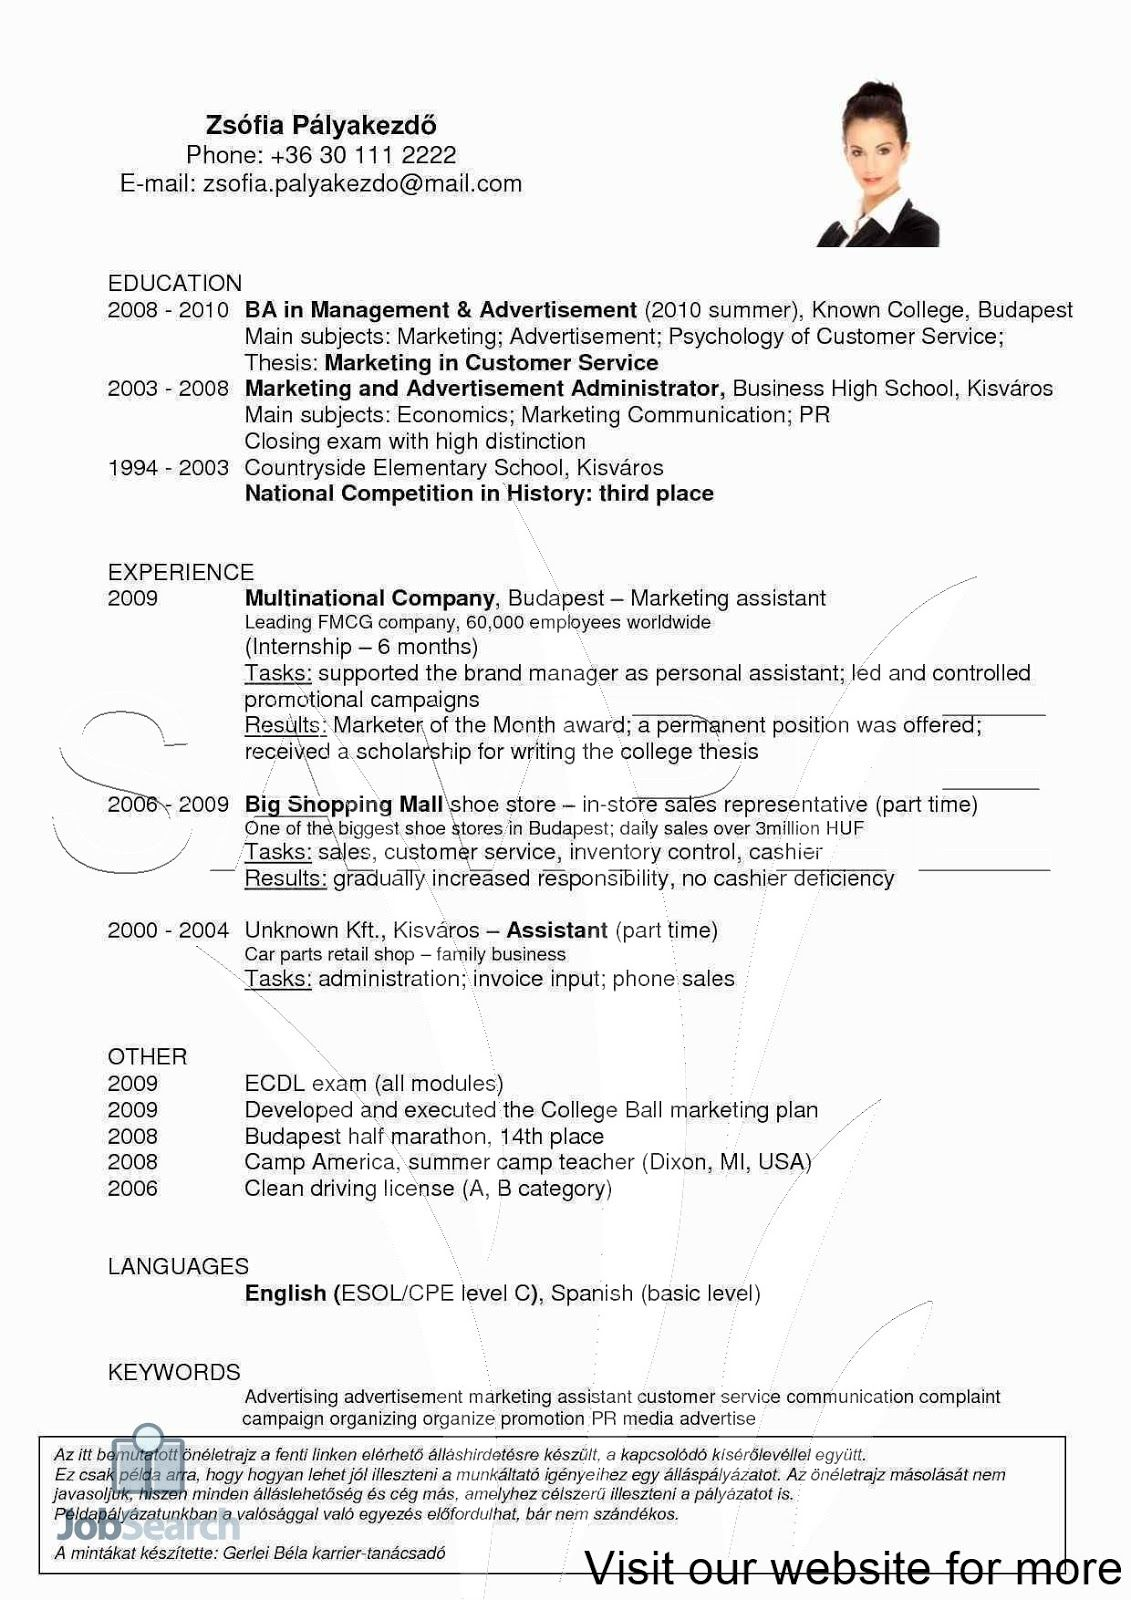 Job Objective Examples Objective Resume Ideas Objective For